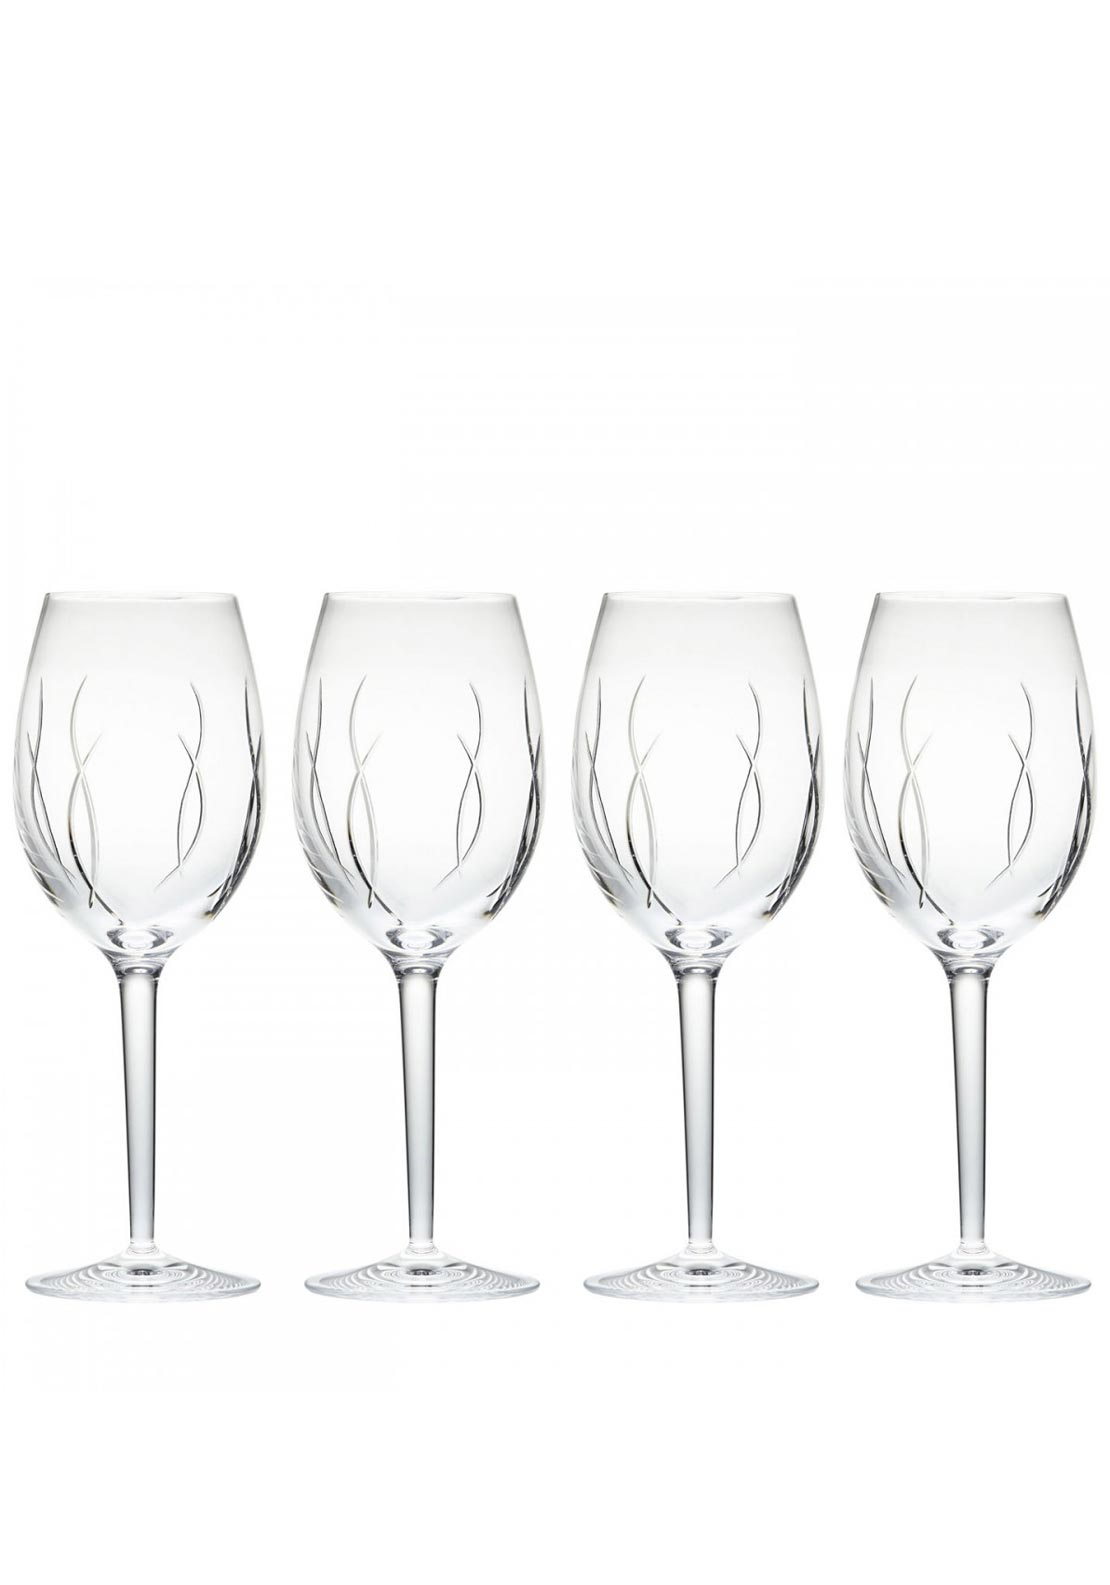 John Rocha at Waterford Weft Wine Glasses, Set of 4